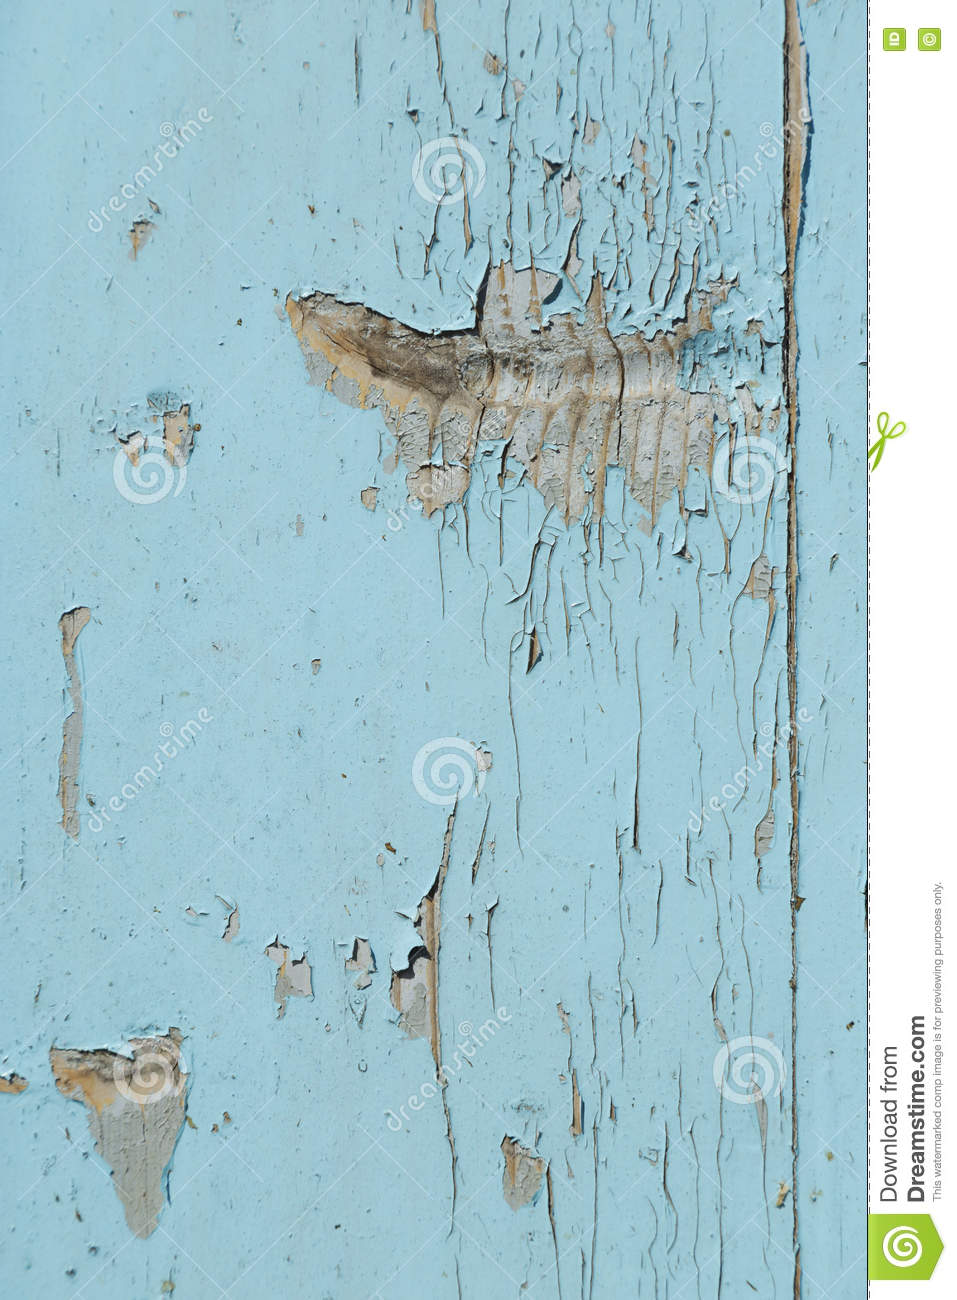 Table top texture - Wood Texture Old Planks Floor Or Table Top Stock Photo